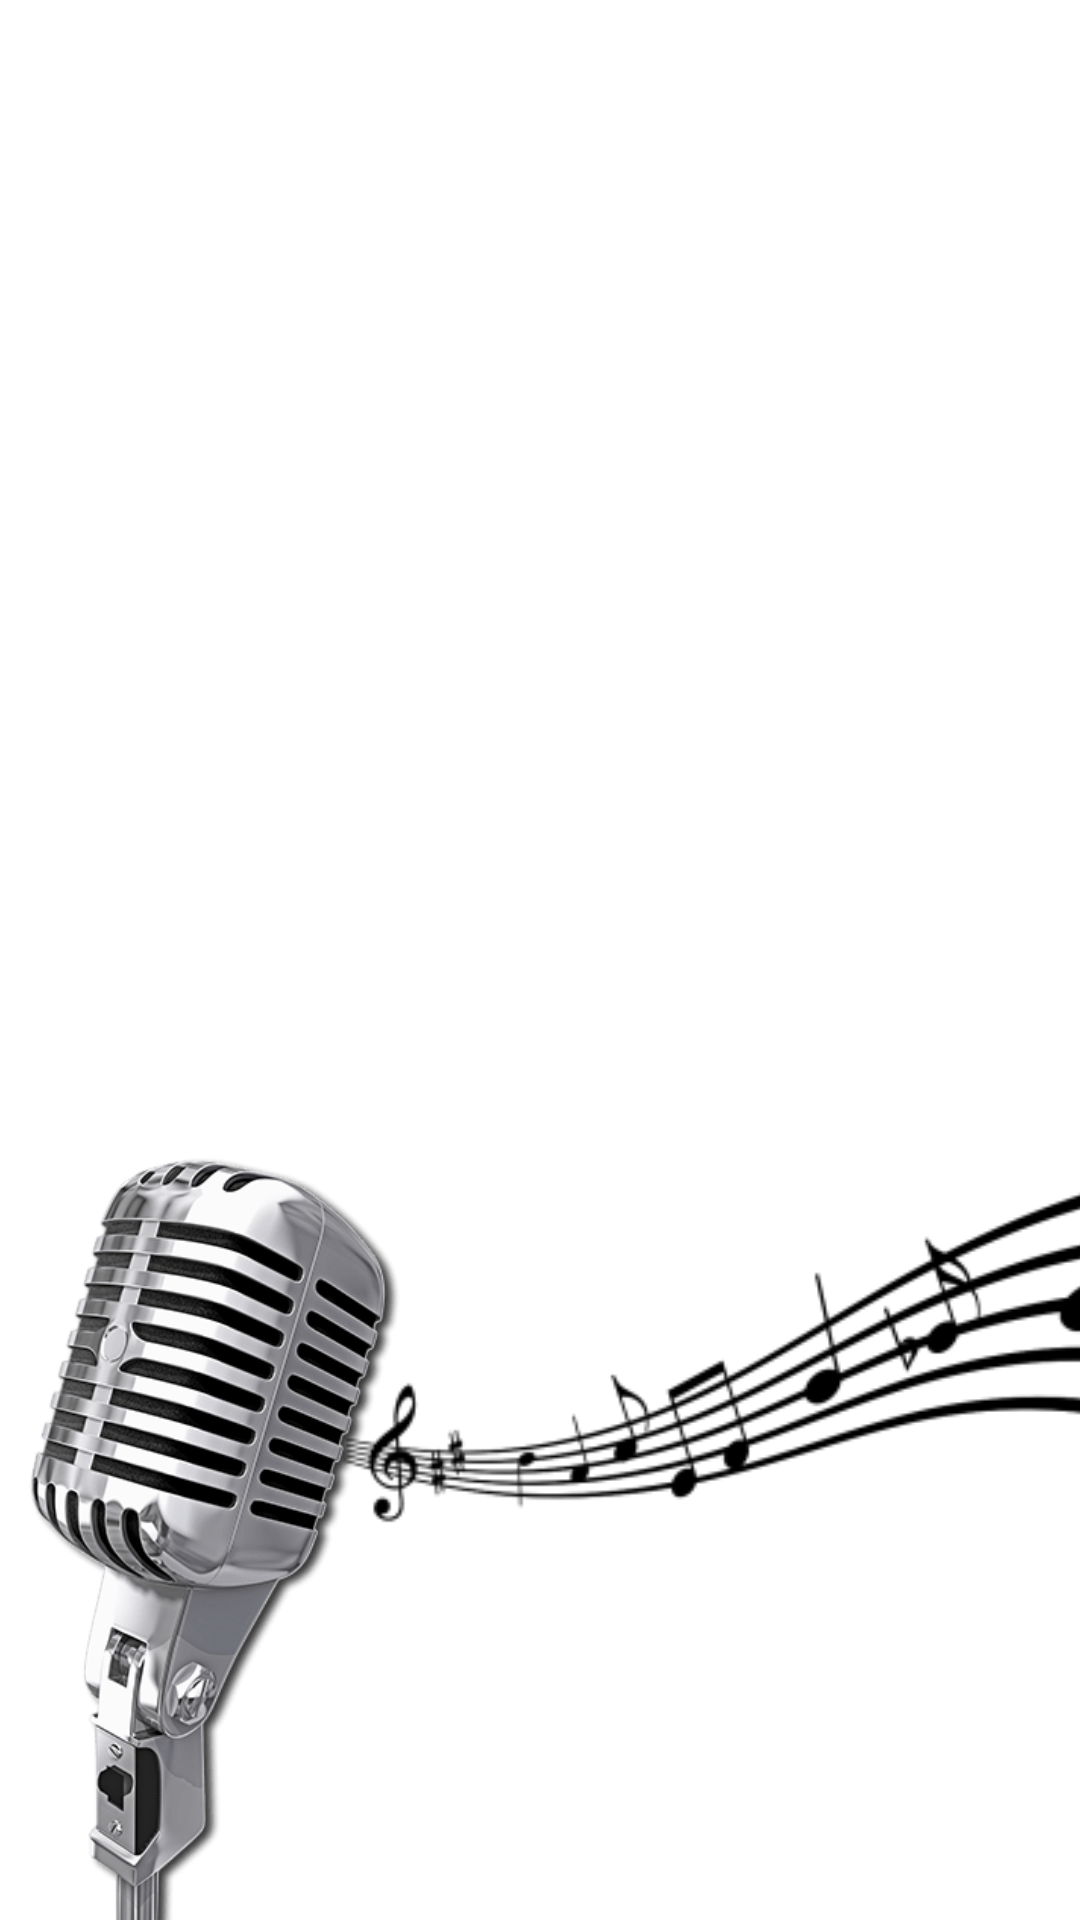 Microphone music notes png. Snapprefs filtermicrophone